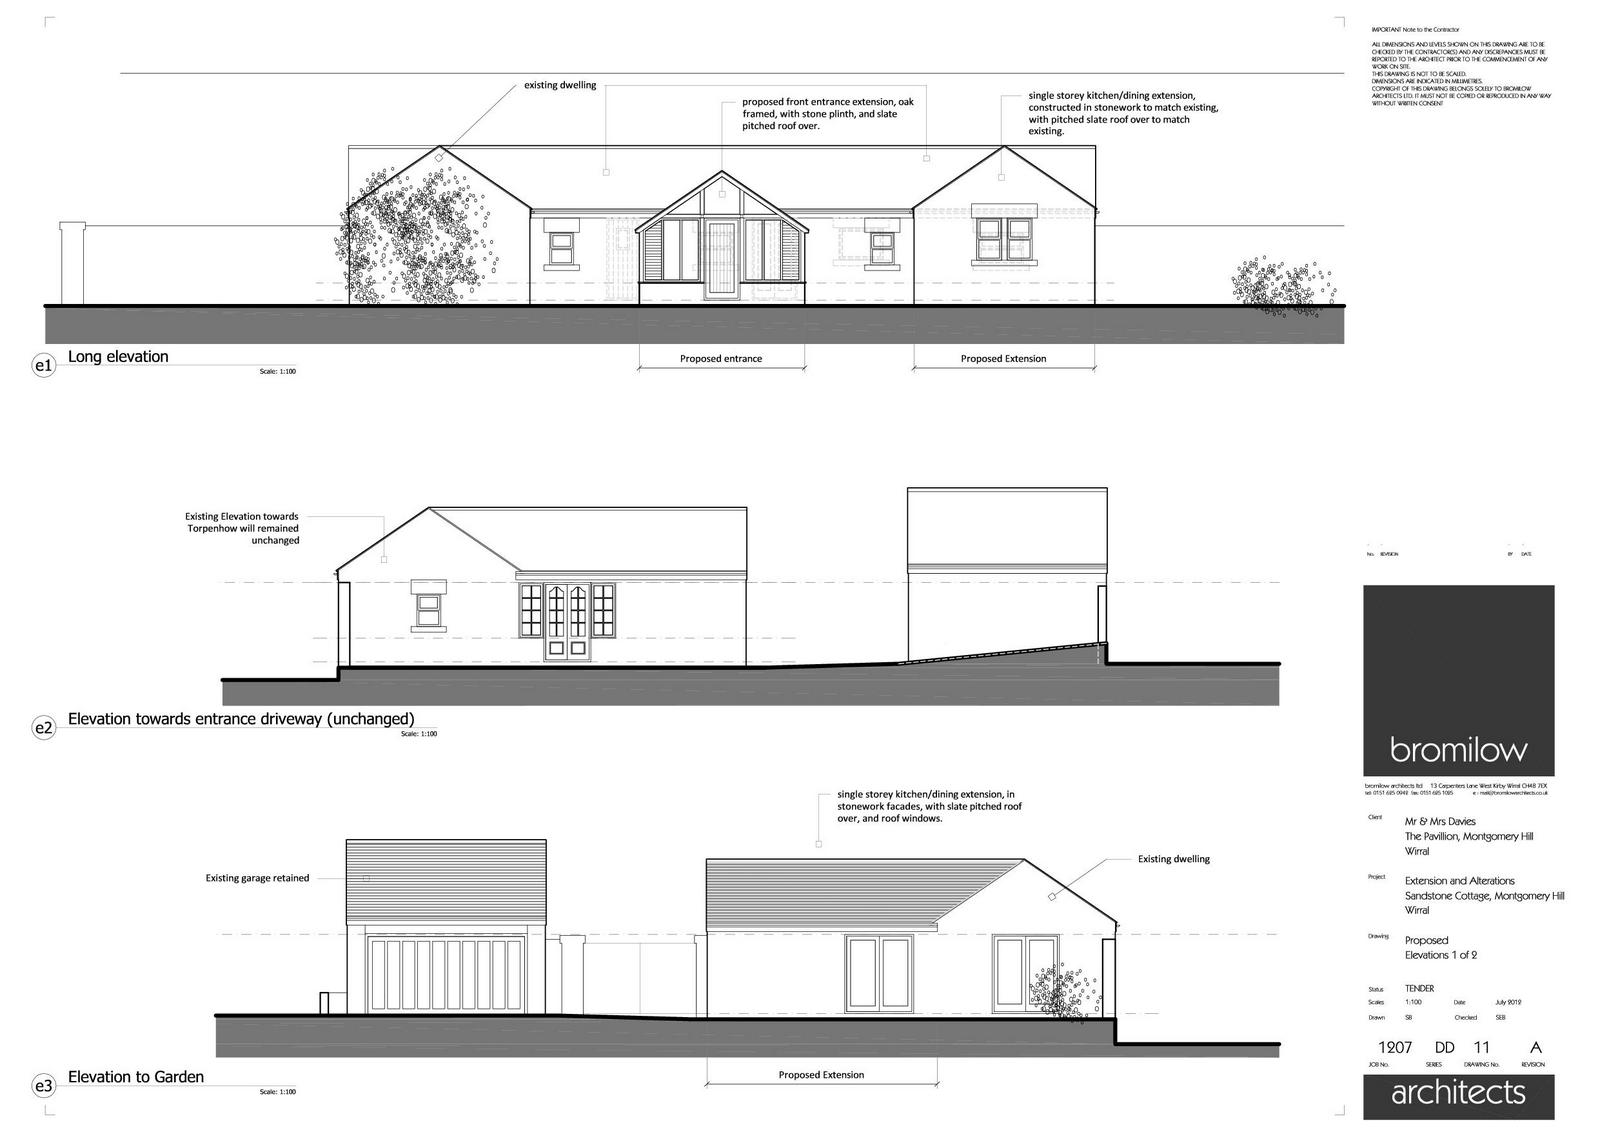 https://i0.wp.com/www.bromilowarchitects.co.uk/wp-content/uploads/2013/05/1207-DD-011A-Sandstone-Cottage-Proposed-Elevations-1-of-2-A3-001.jpg?fit=1600%2C1132